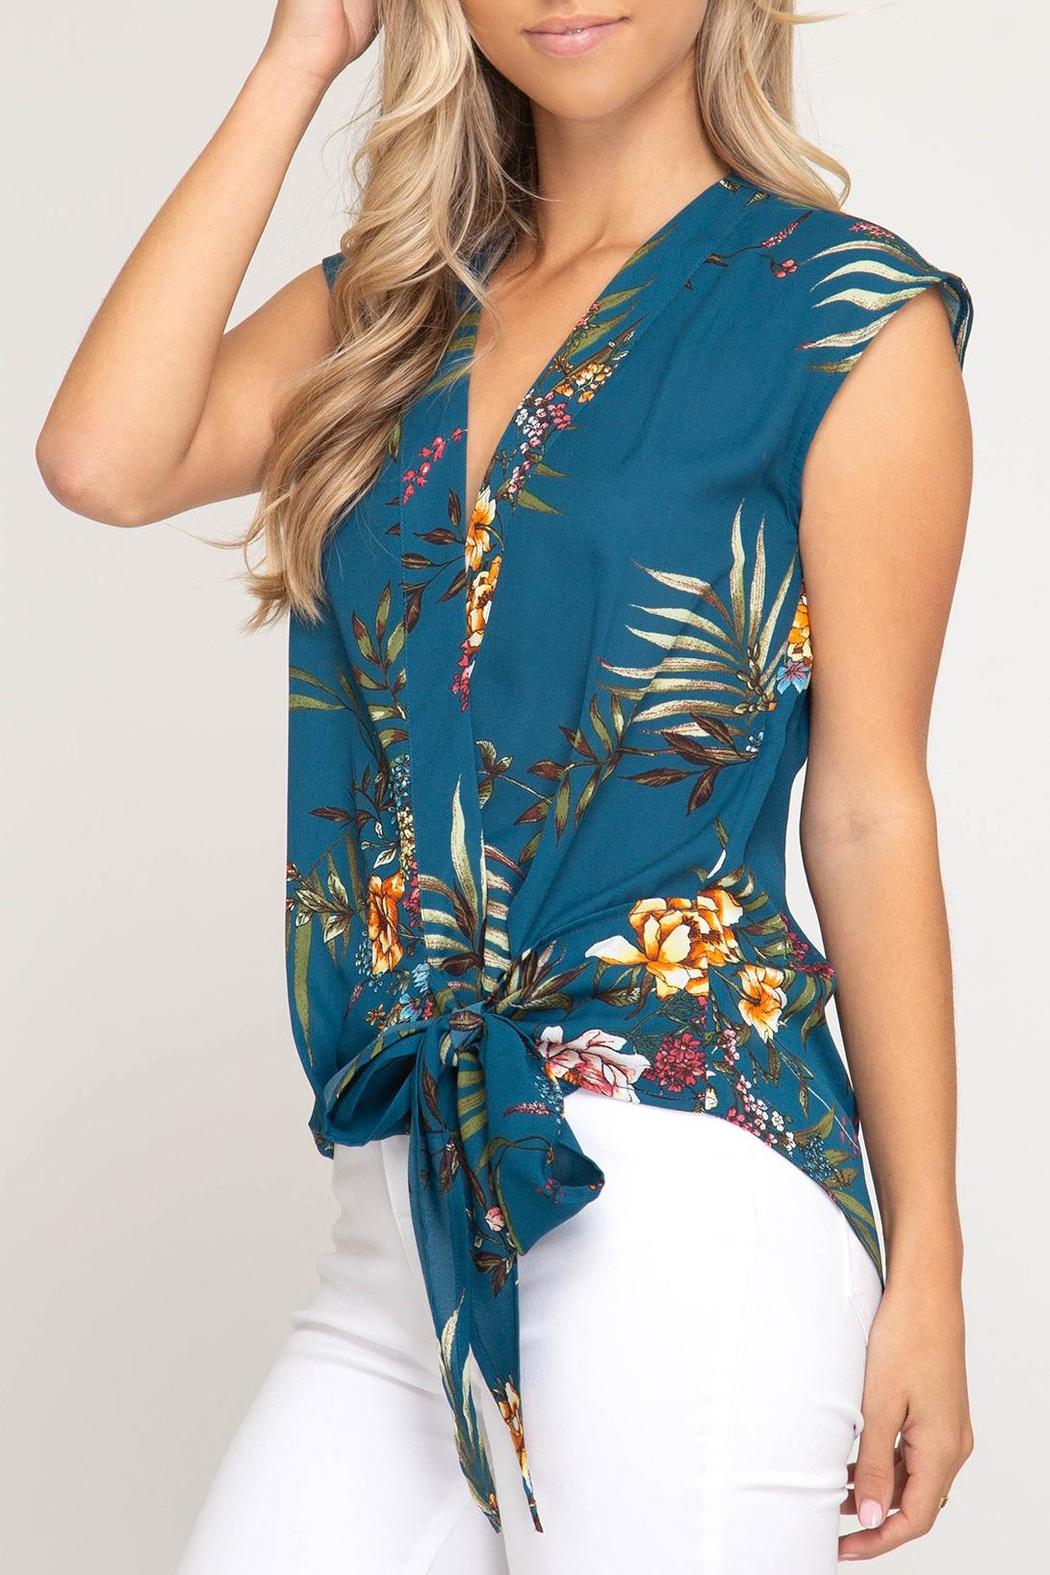 She + Sky Floral Side-Tie Top - Main Image